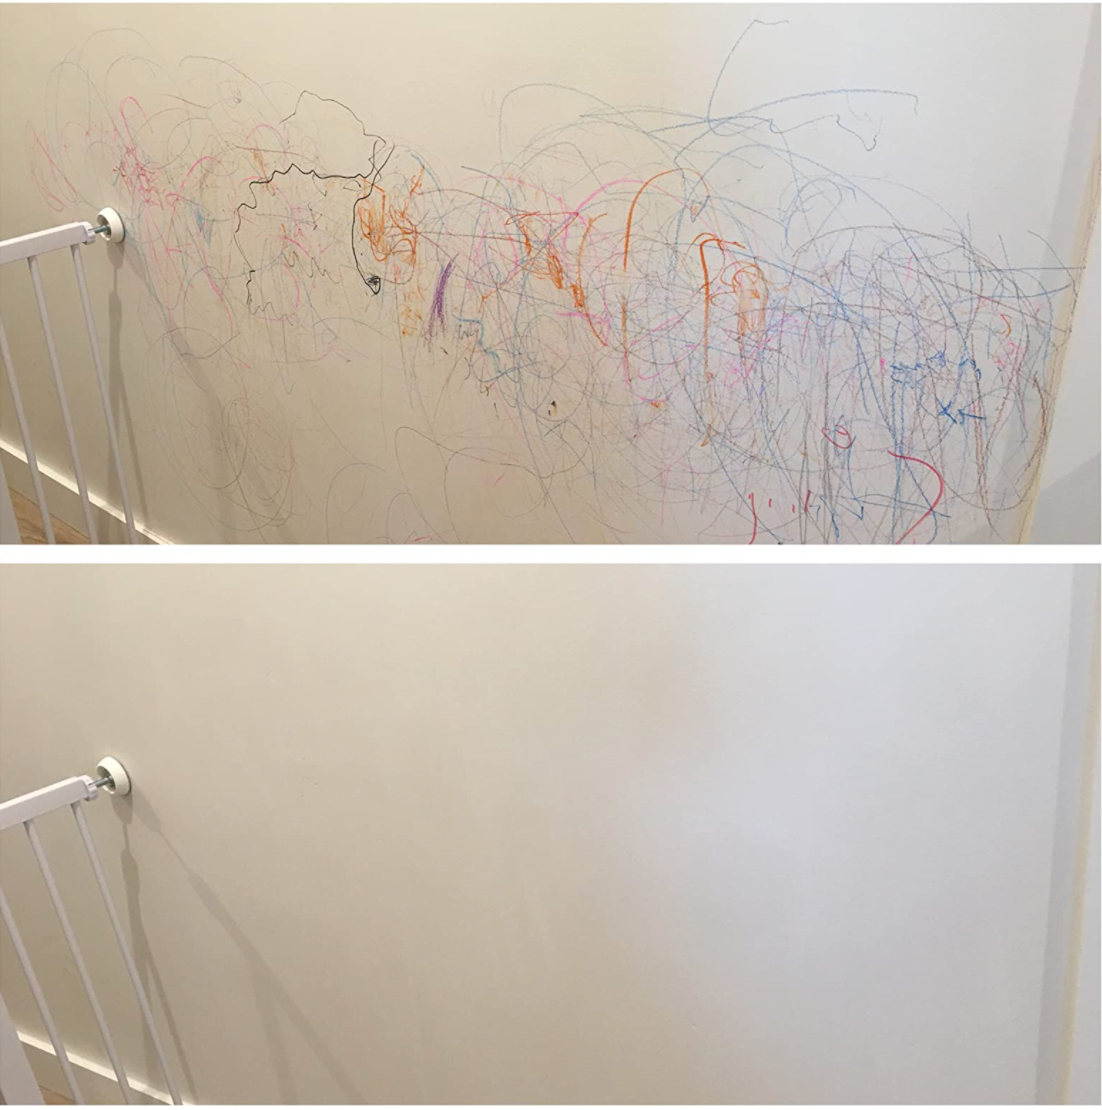 Reviewer's before photo shows the wall covered in crayon markings, and the after shows all those markings removed